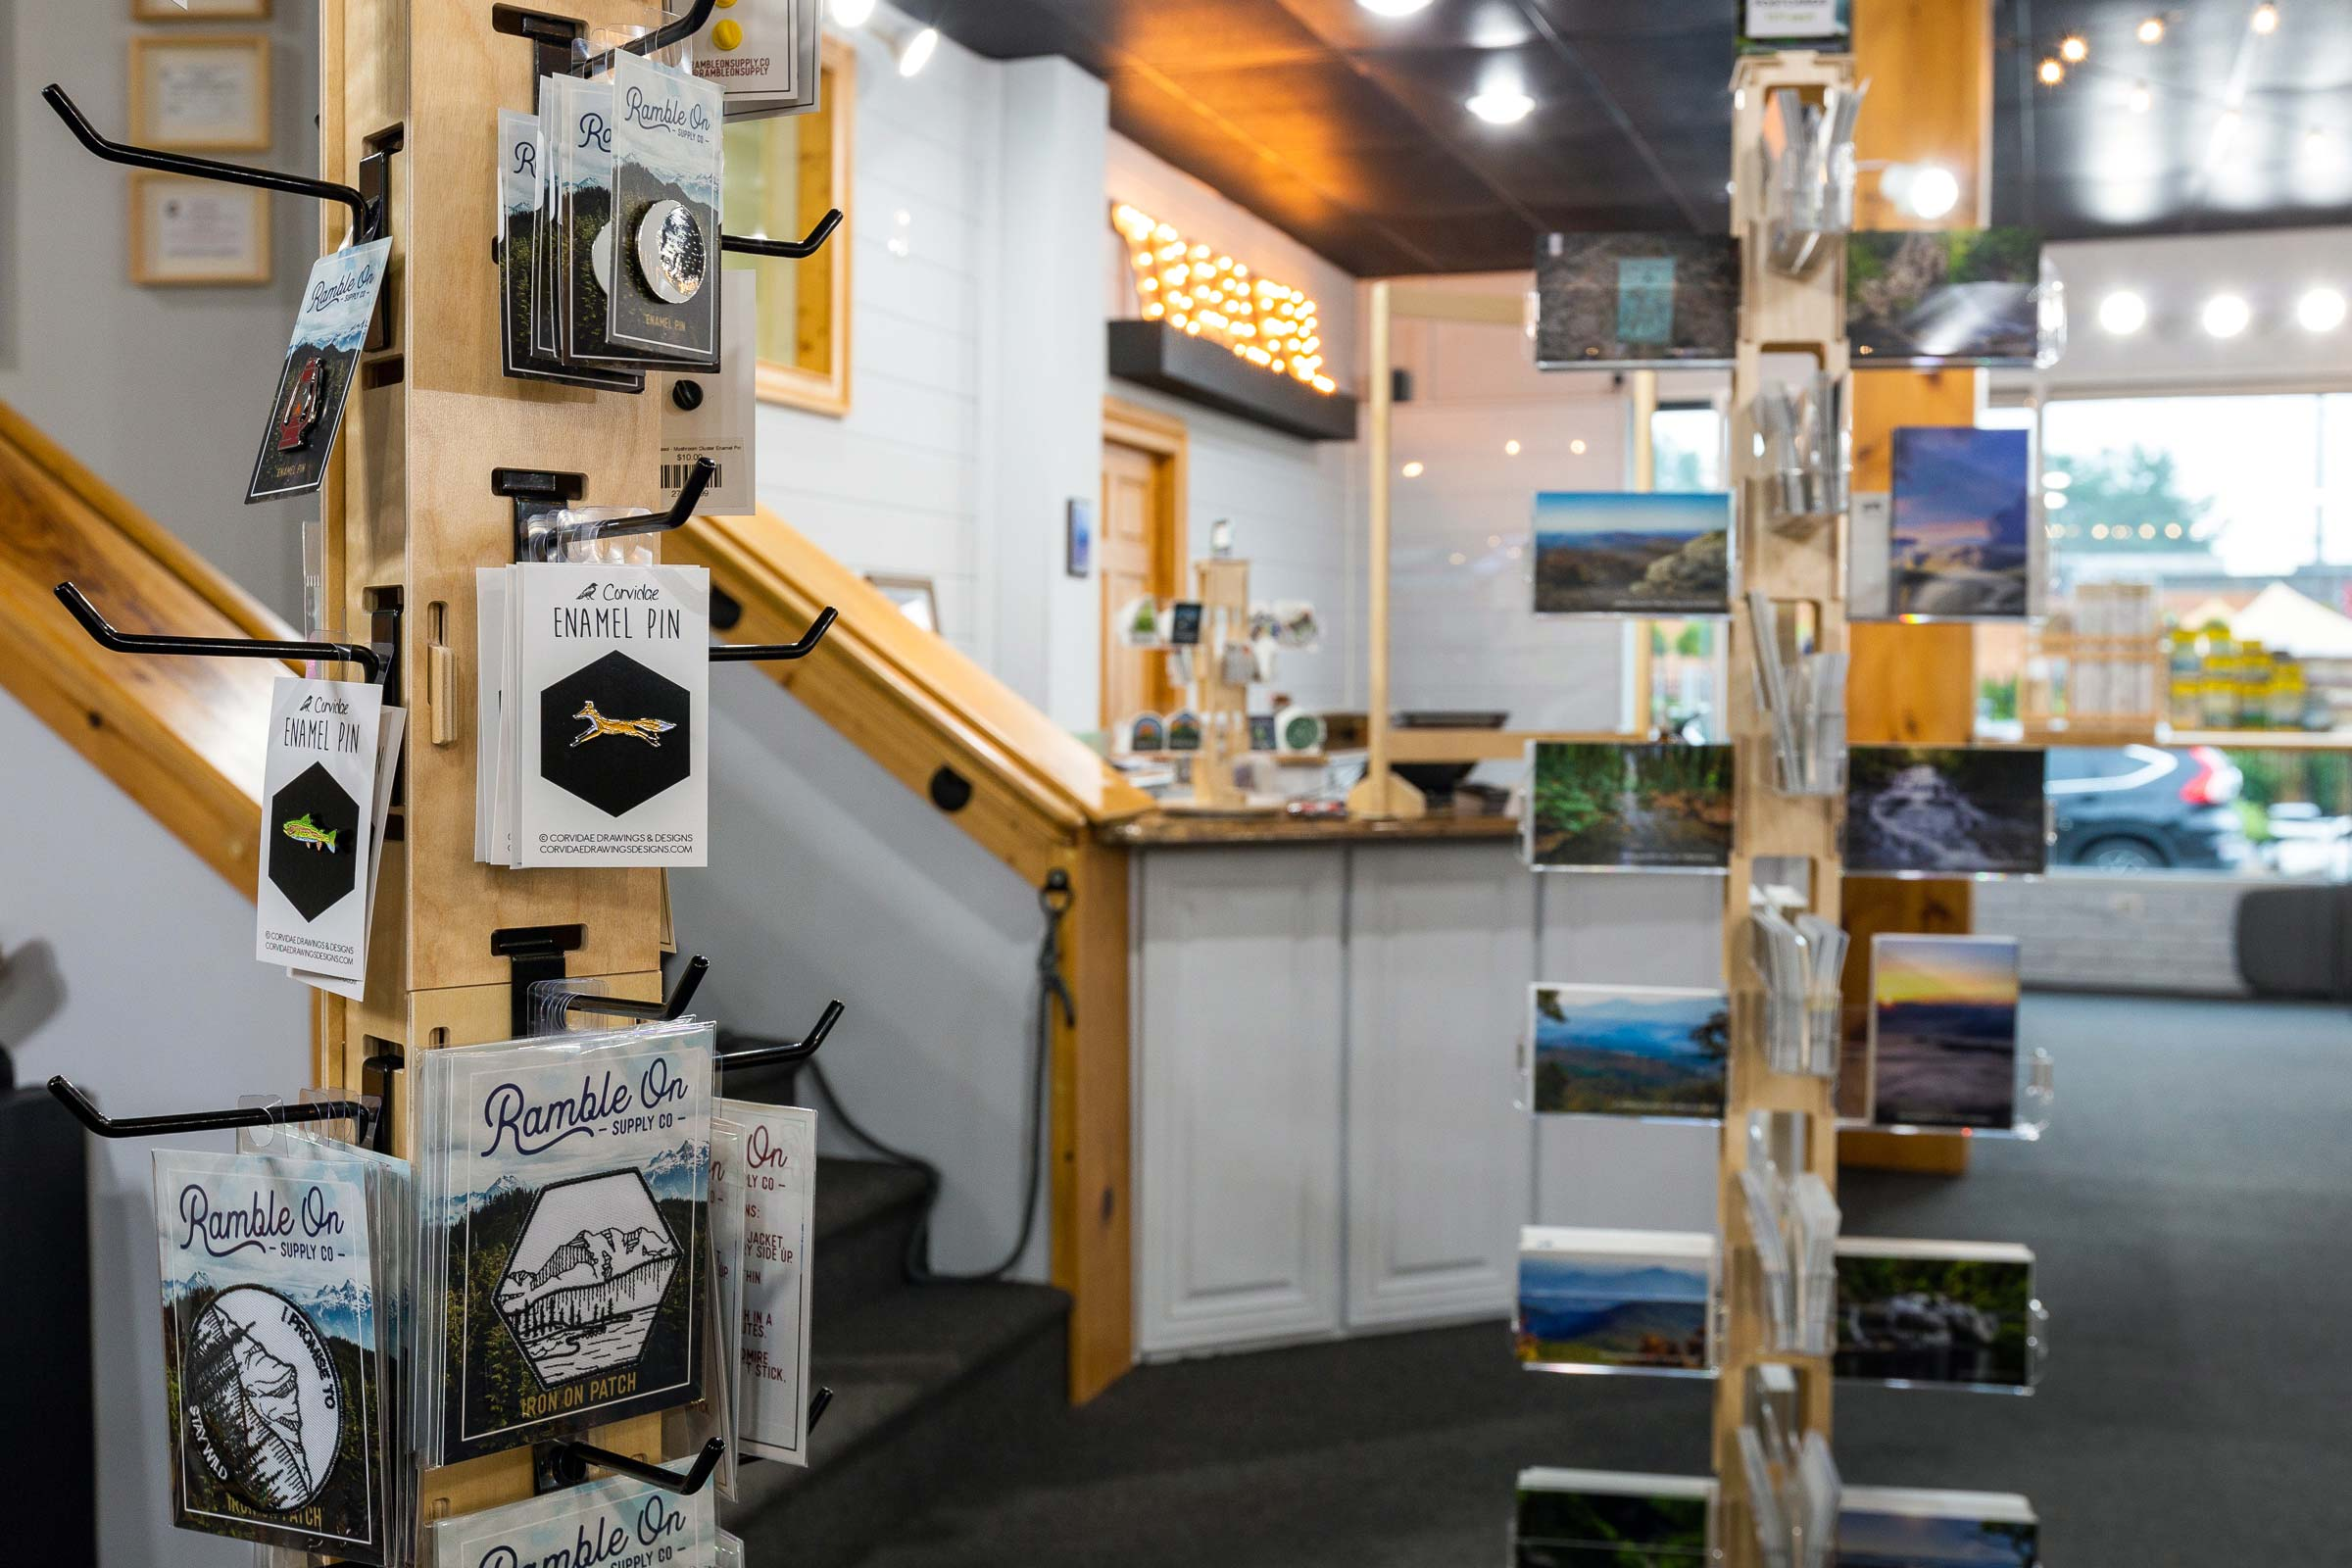 Trailful Outdoor Co - a hiking outfitter shop in the North Georgia Mountains near the Appalachian Trail